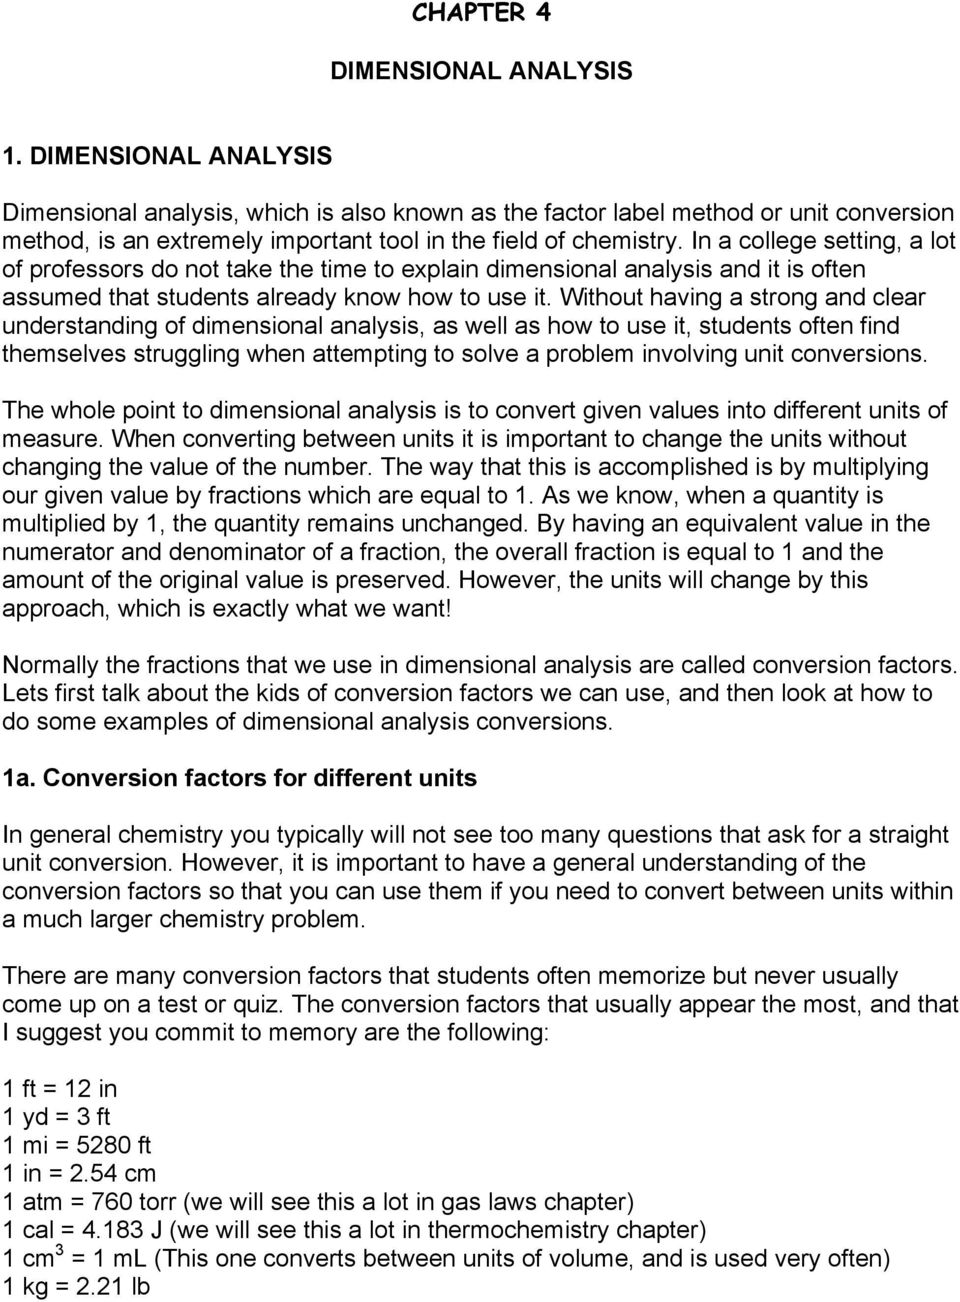 CHAPTER 4 DIMENSIONAL ANALYSIS - PDF